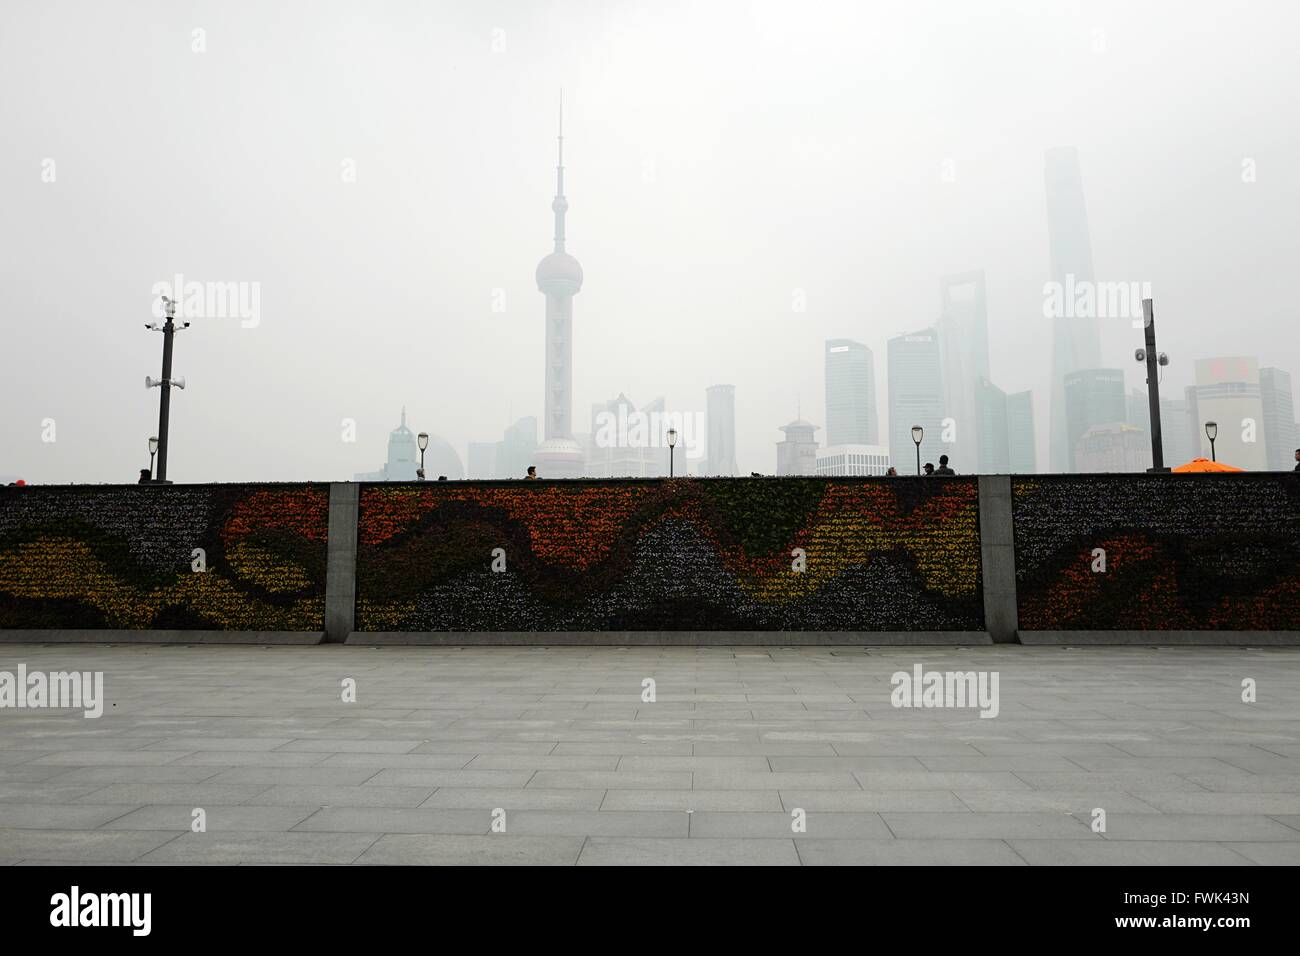 Graffiti On Wall By Street Against Cityscape In Foggy Weather - Stock Image